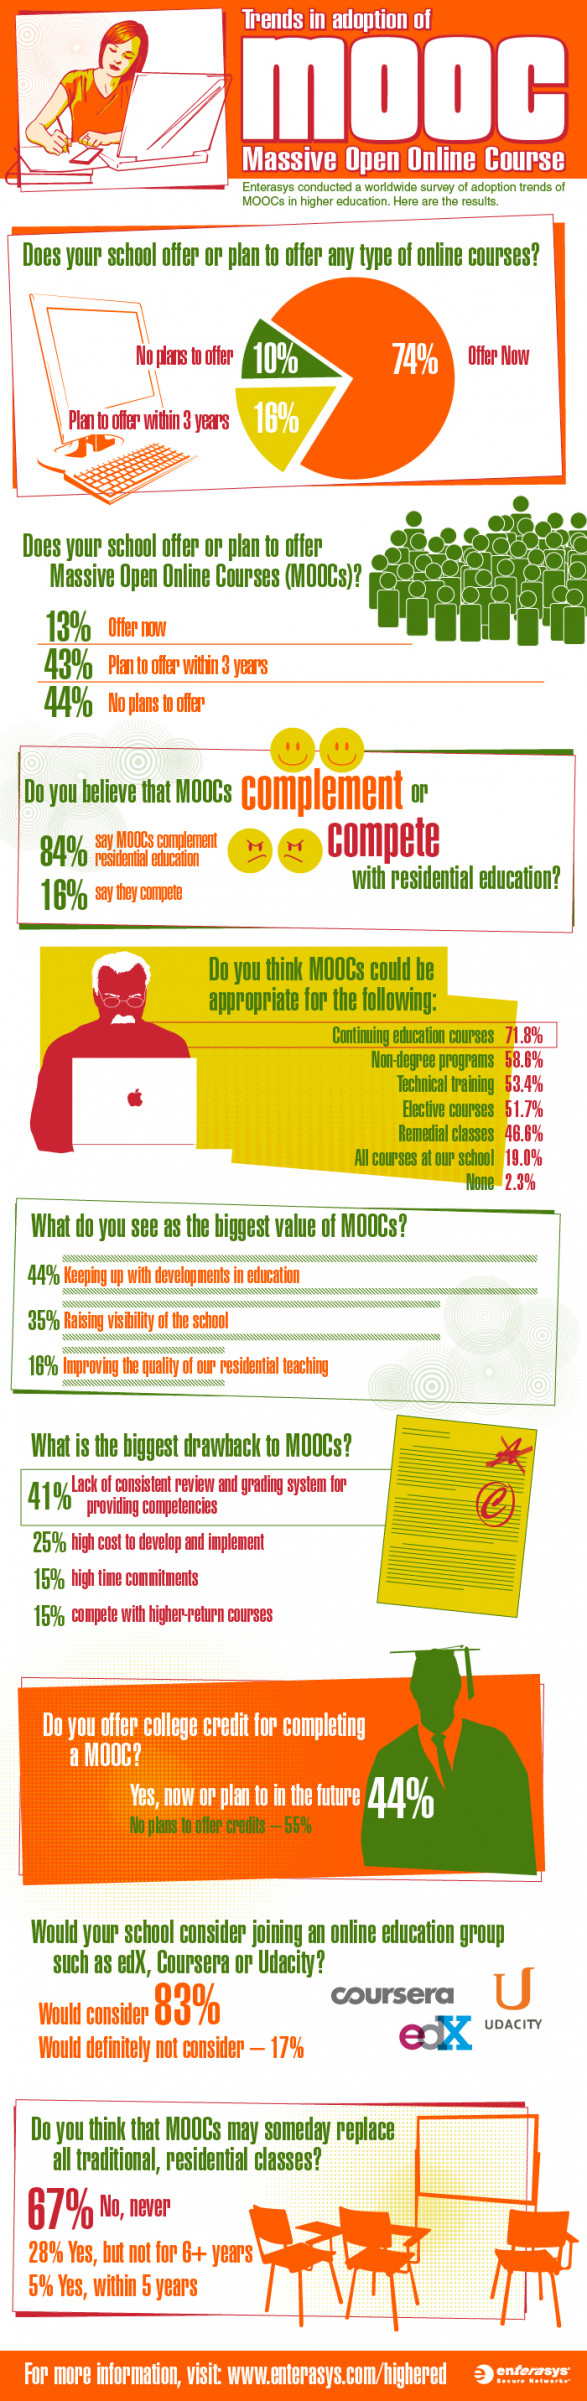 Trends in Adoption of MOOC (Massive Open Online Courses